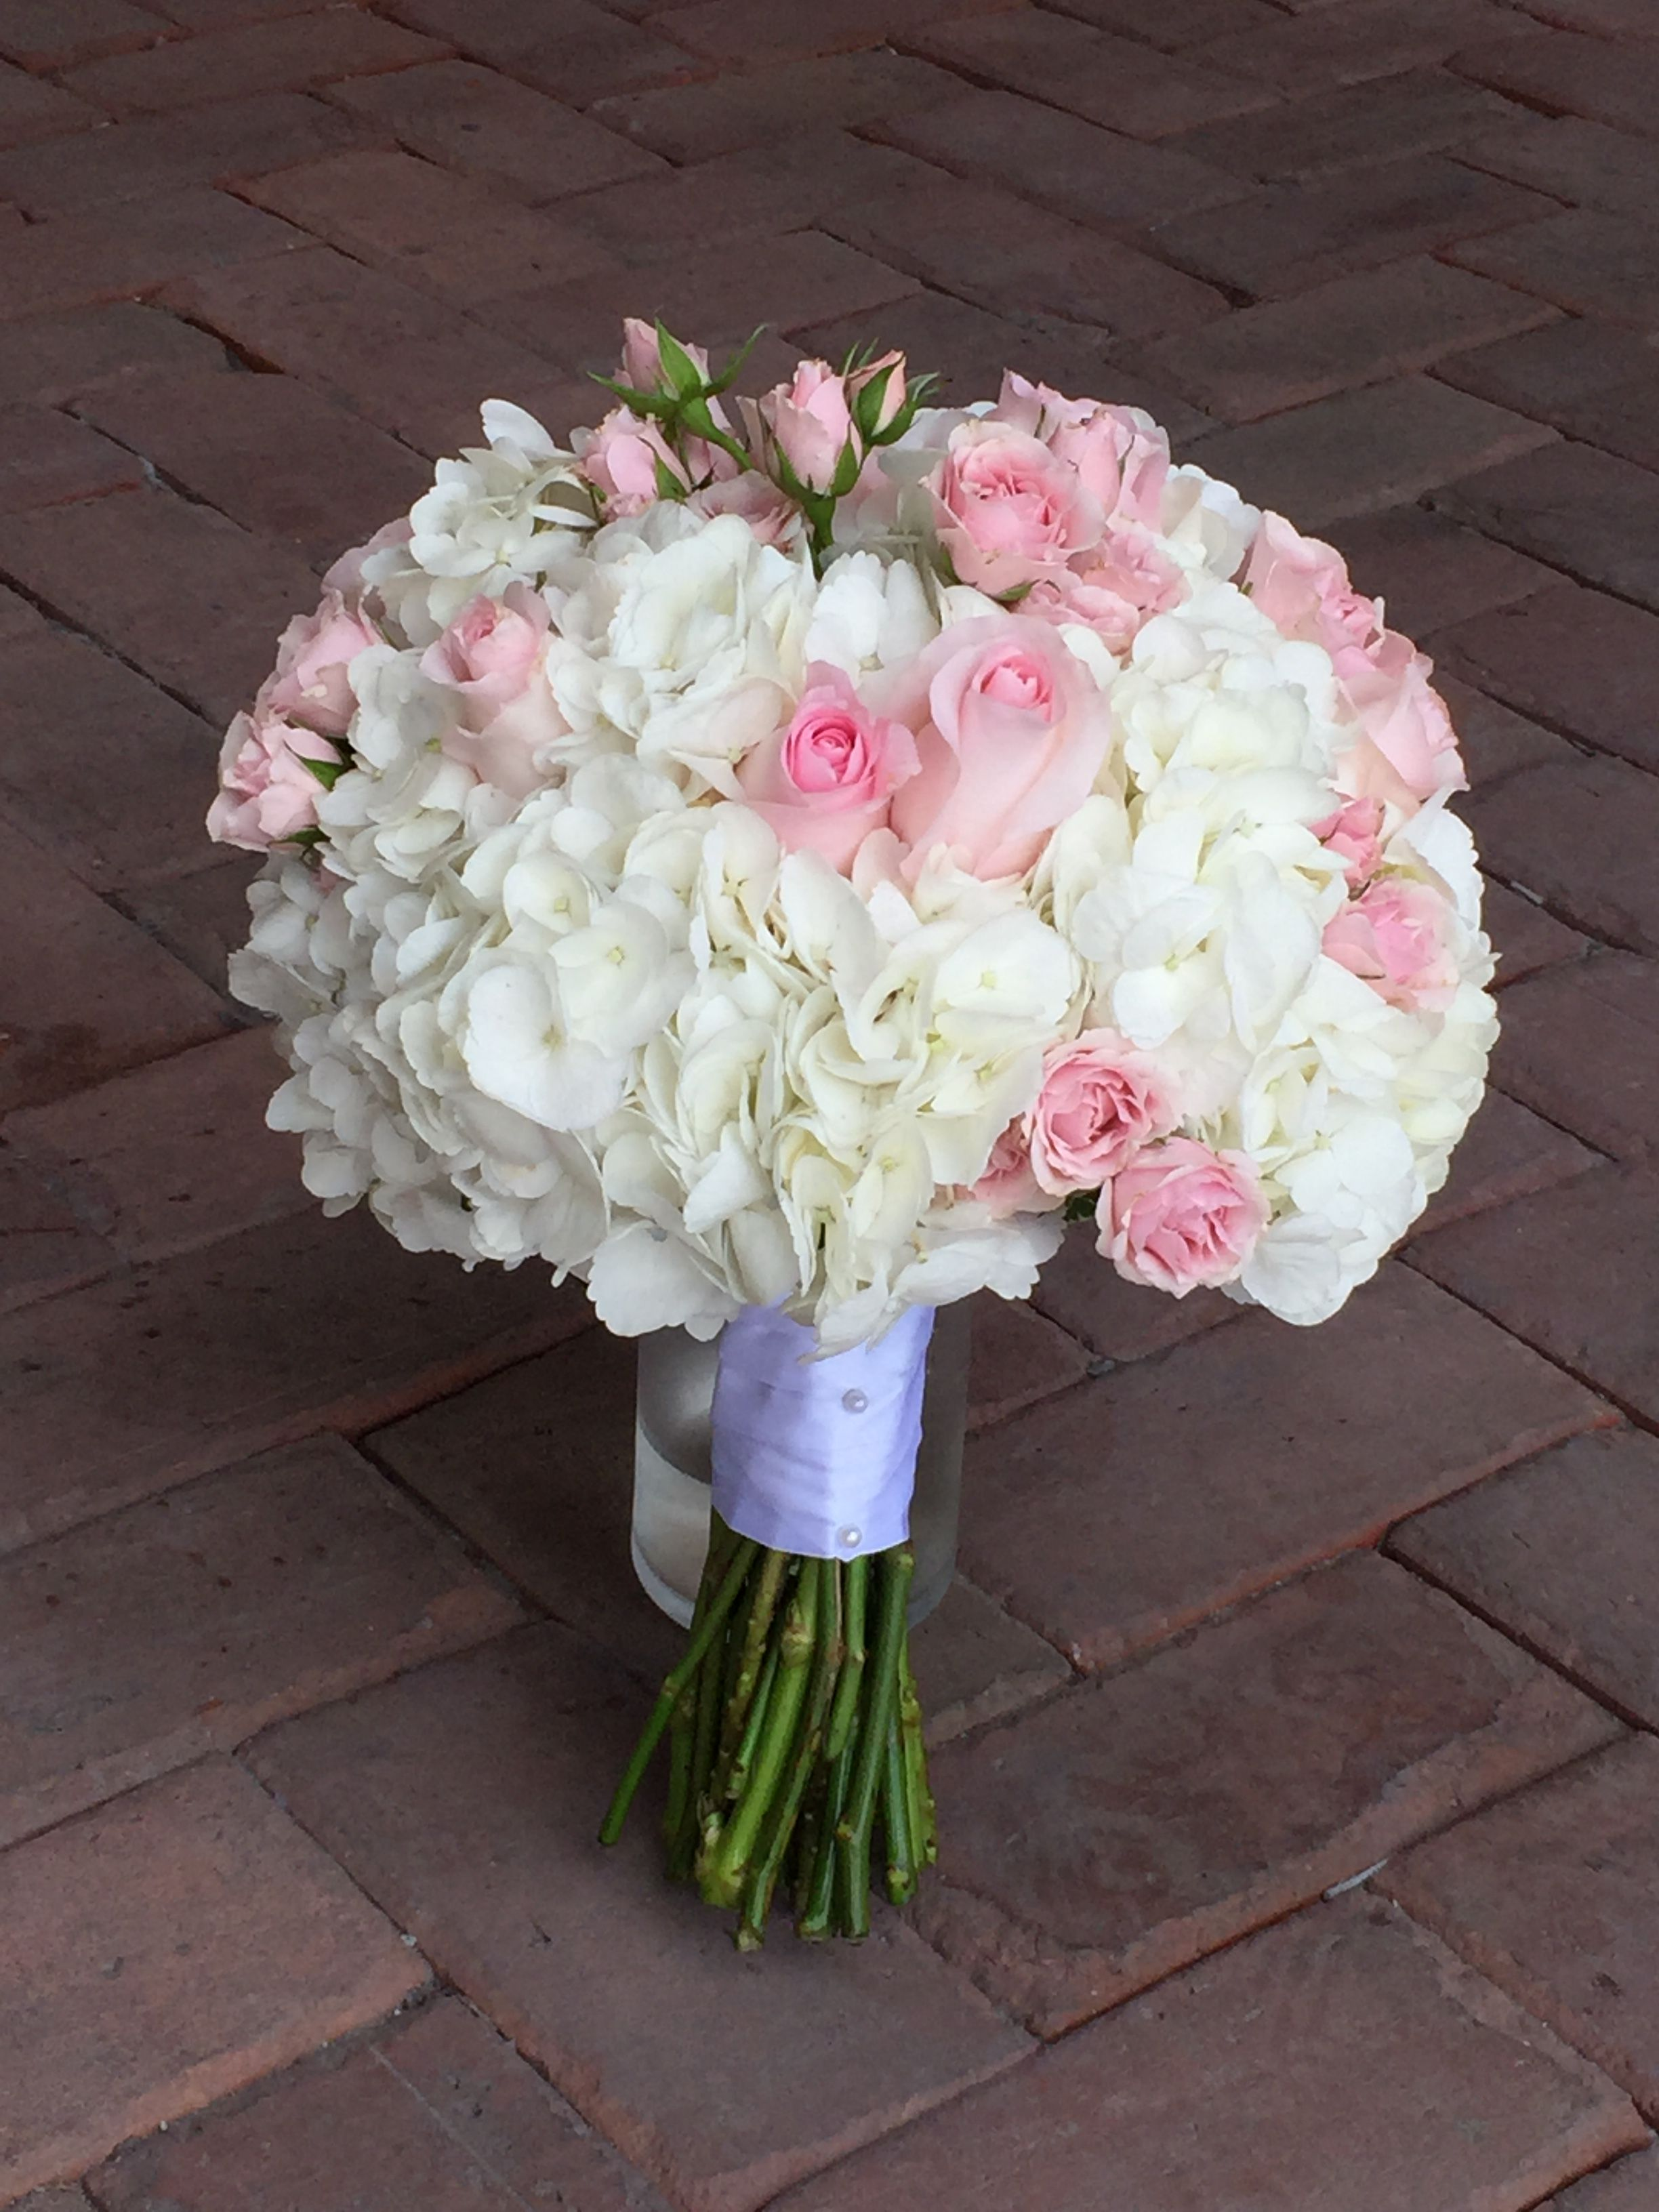 White Hydrangea And Blush Pink Rose Bouquet By Love In Bloom Florist Key West Pink Hydrangea Bouquet Pink Hydrangea Centerpieces Hydrangea Bridal Bouquet